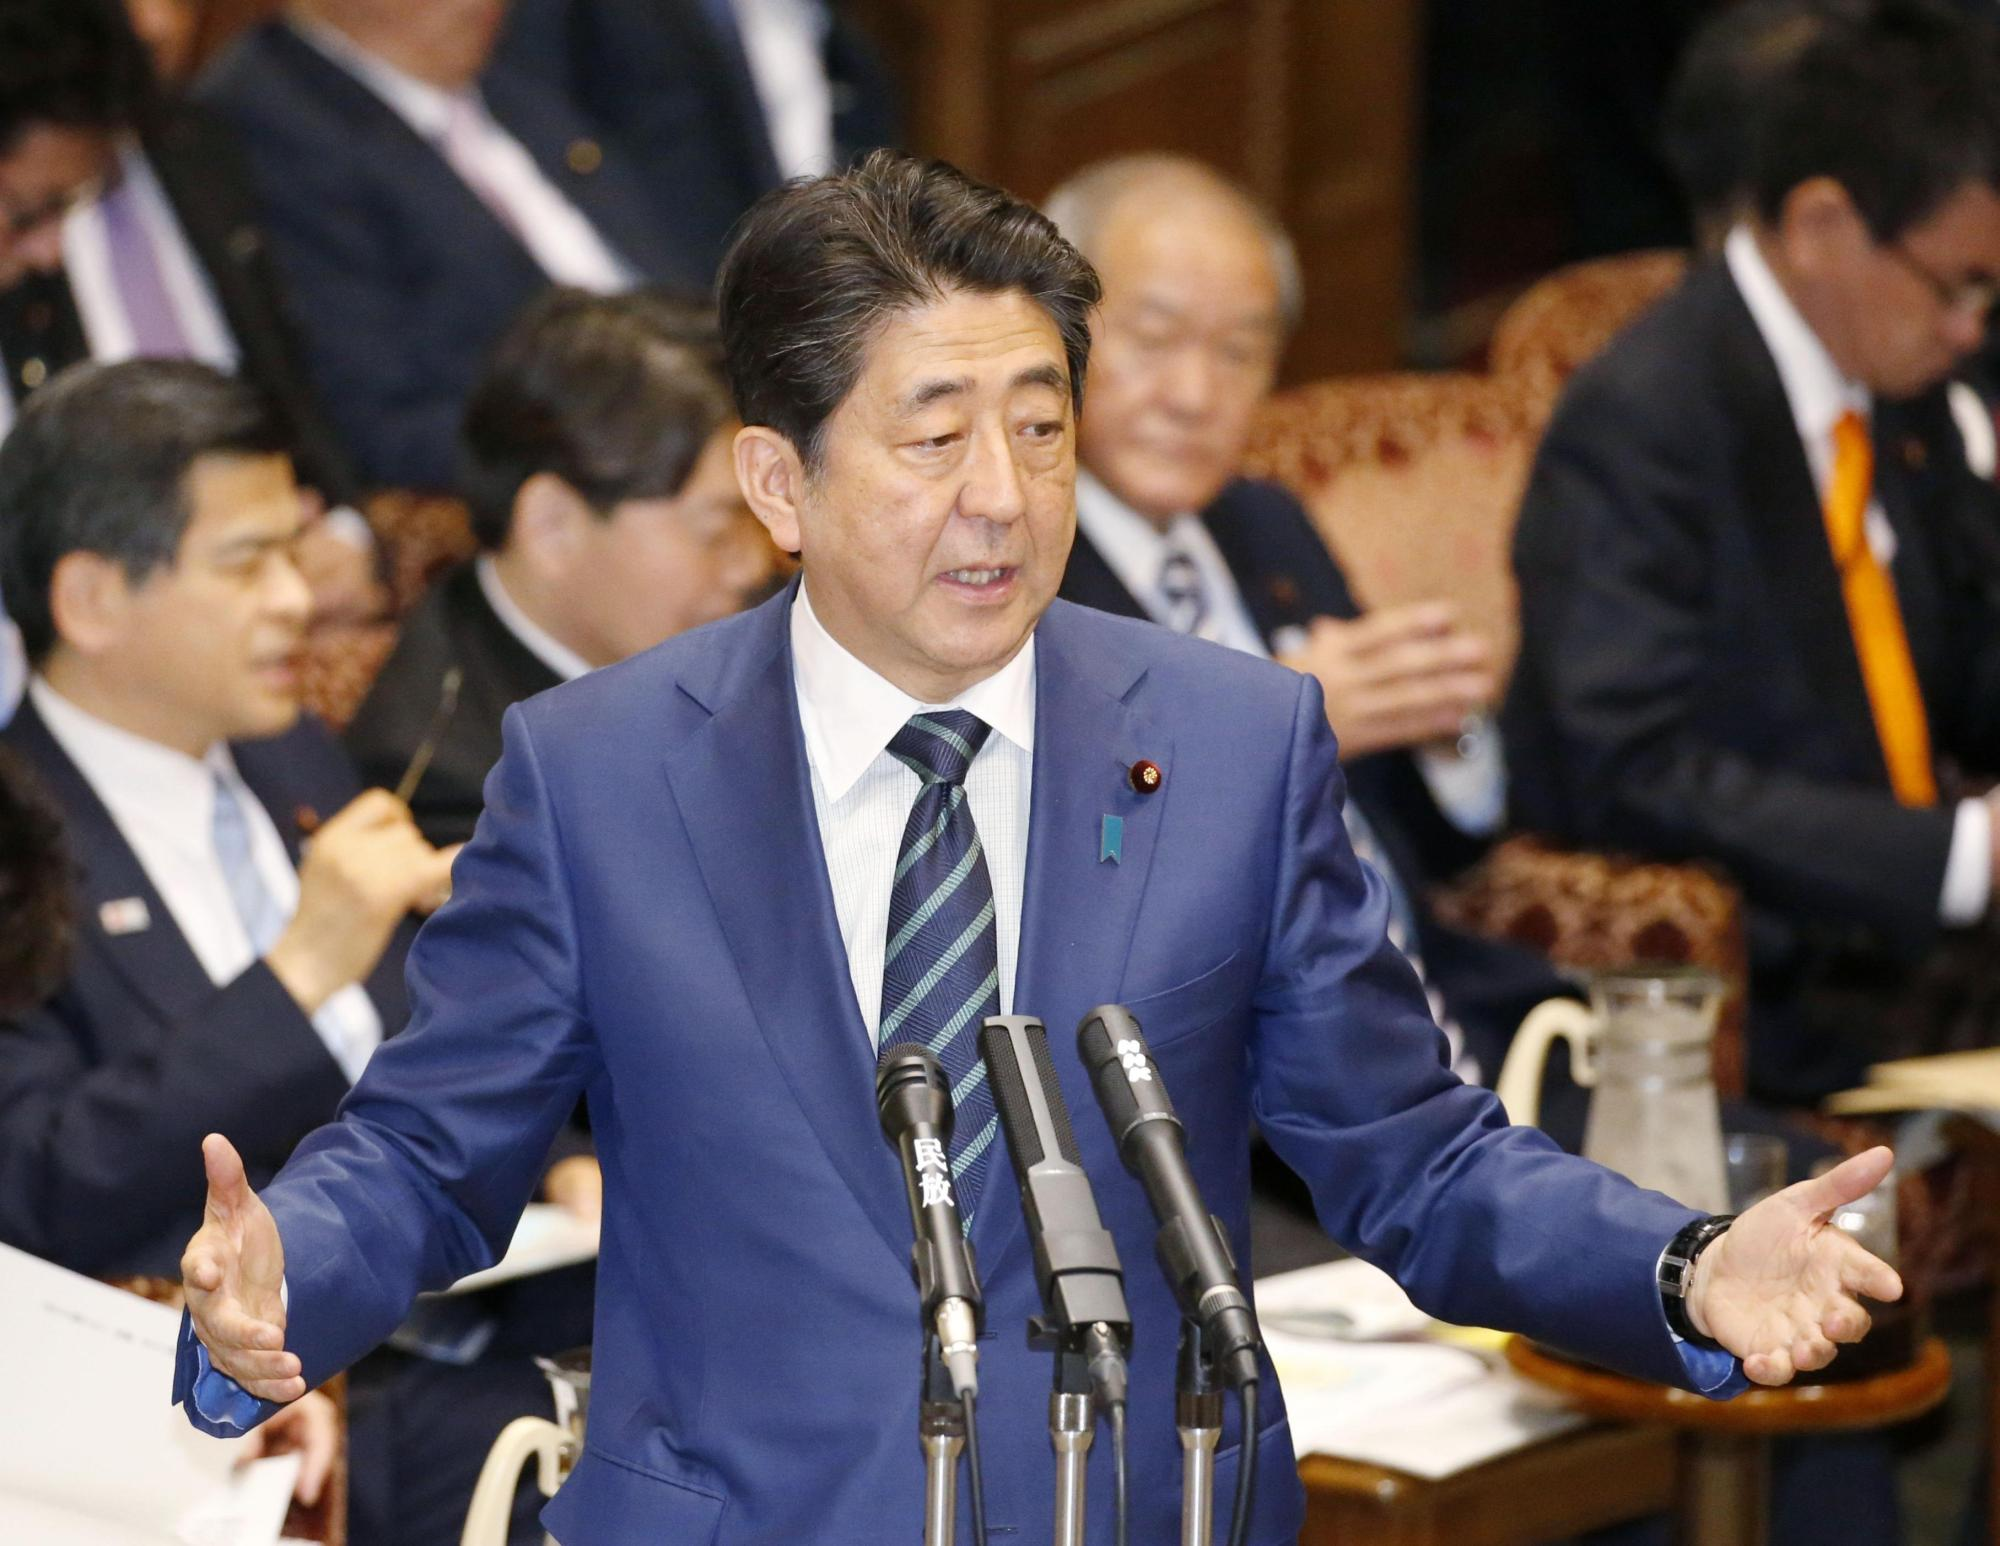 Prime Minister Shinzo Abe speaks at the  Upper House Budget Committee on March 1, where he promised the government would look again at the impact of the discretionary work system on people's work hours. | KYODO